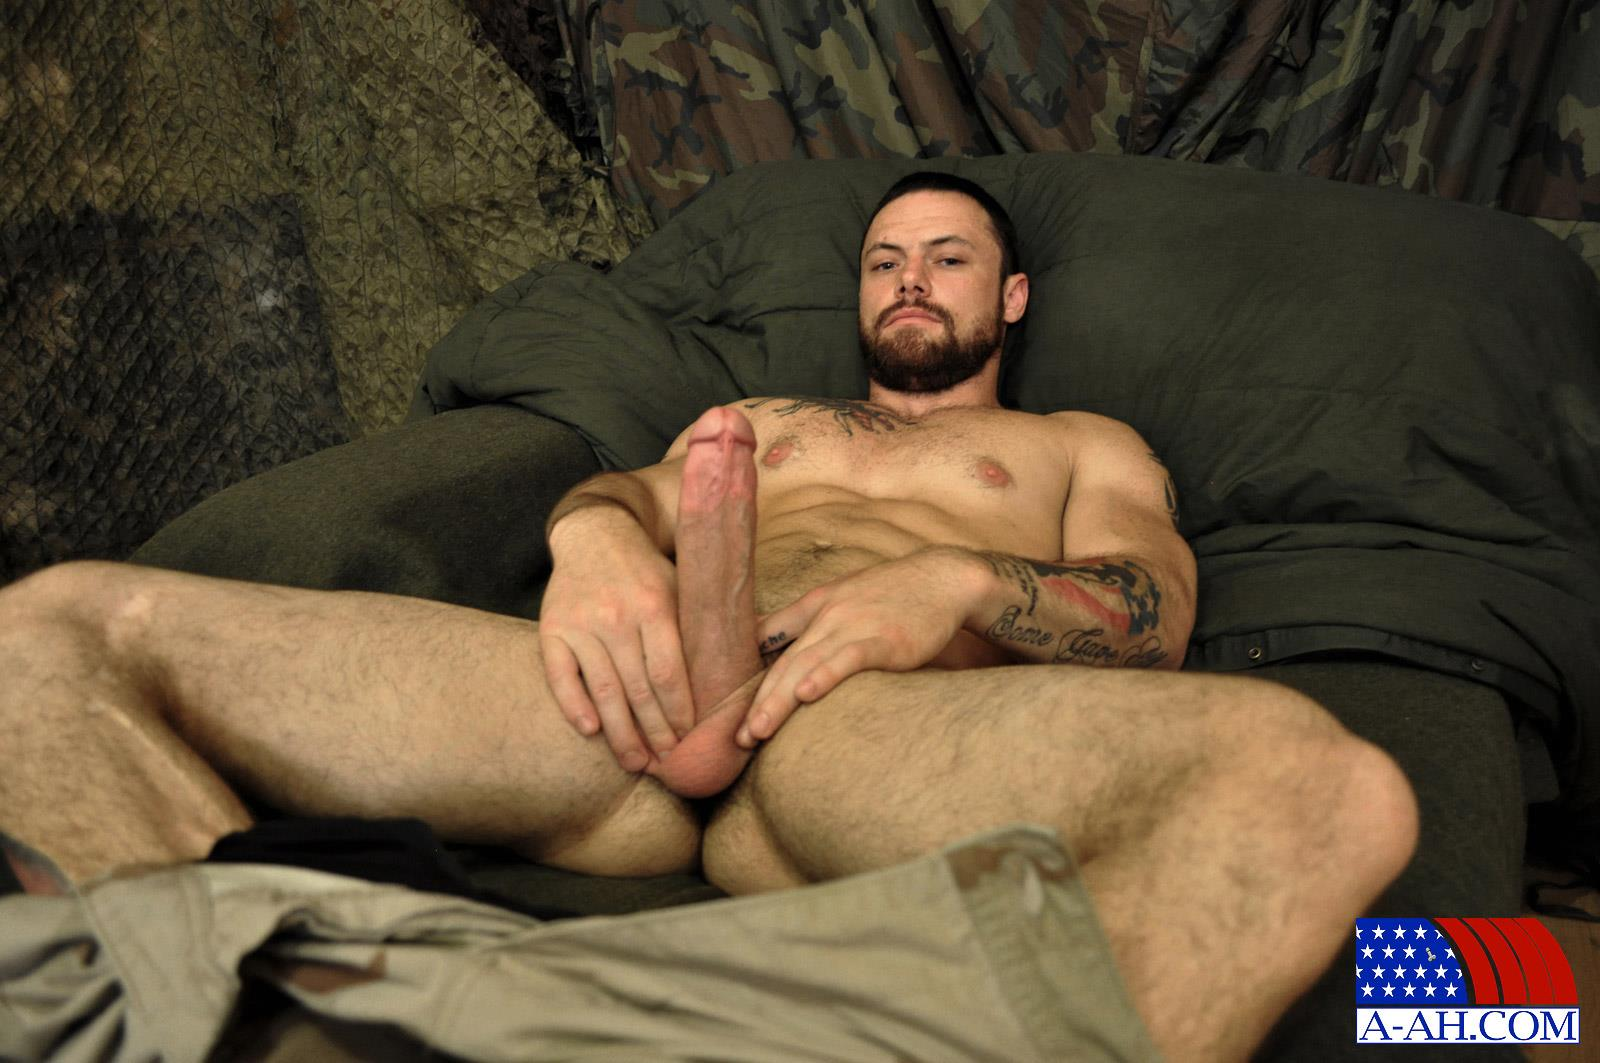 All-American-Heroes-Sergeant-Miles-Army-Guy-Jerking-Off-Big-Cock-And-Fingering-Ass-Amateur-Gay-Porn-08 Happy Veterans Day: Straight US Army Sergeant Jerks His Thick Cock